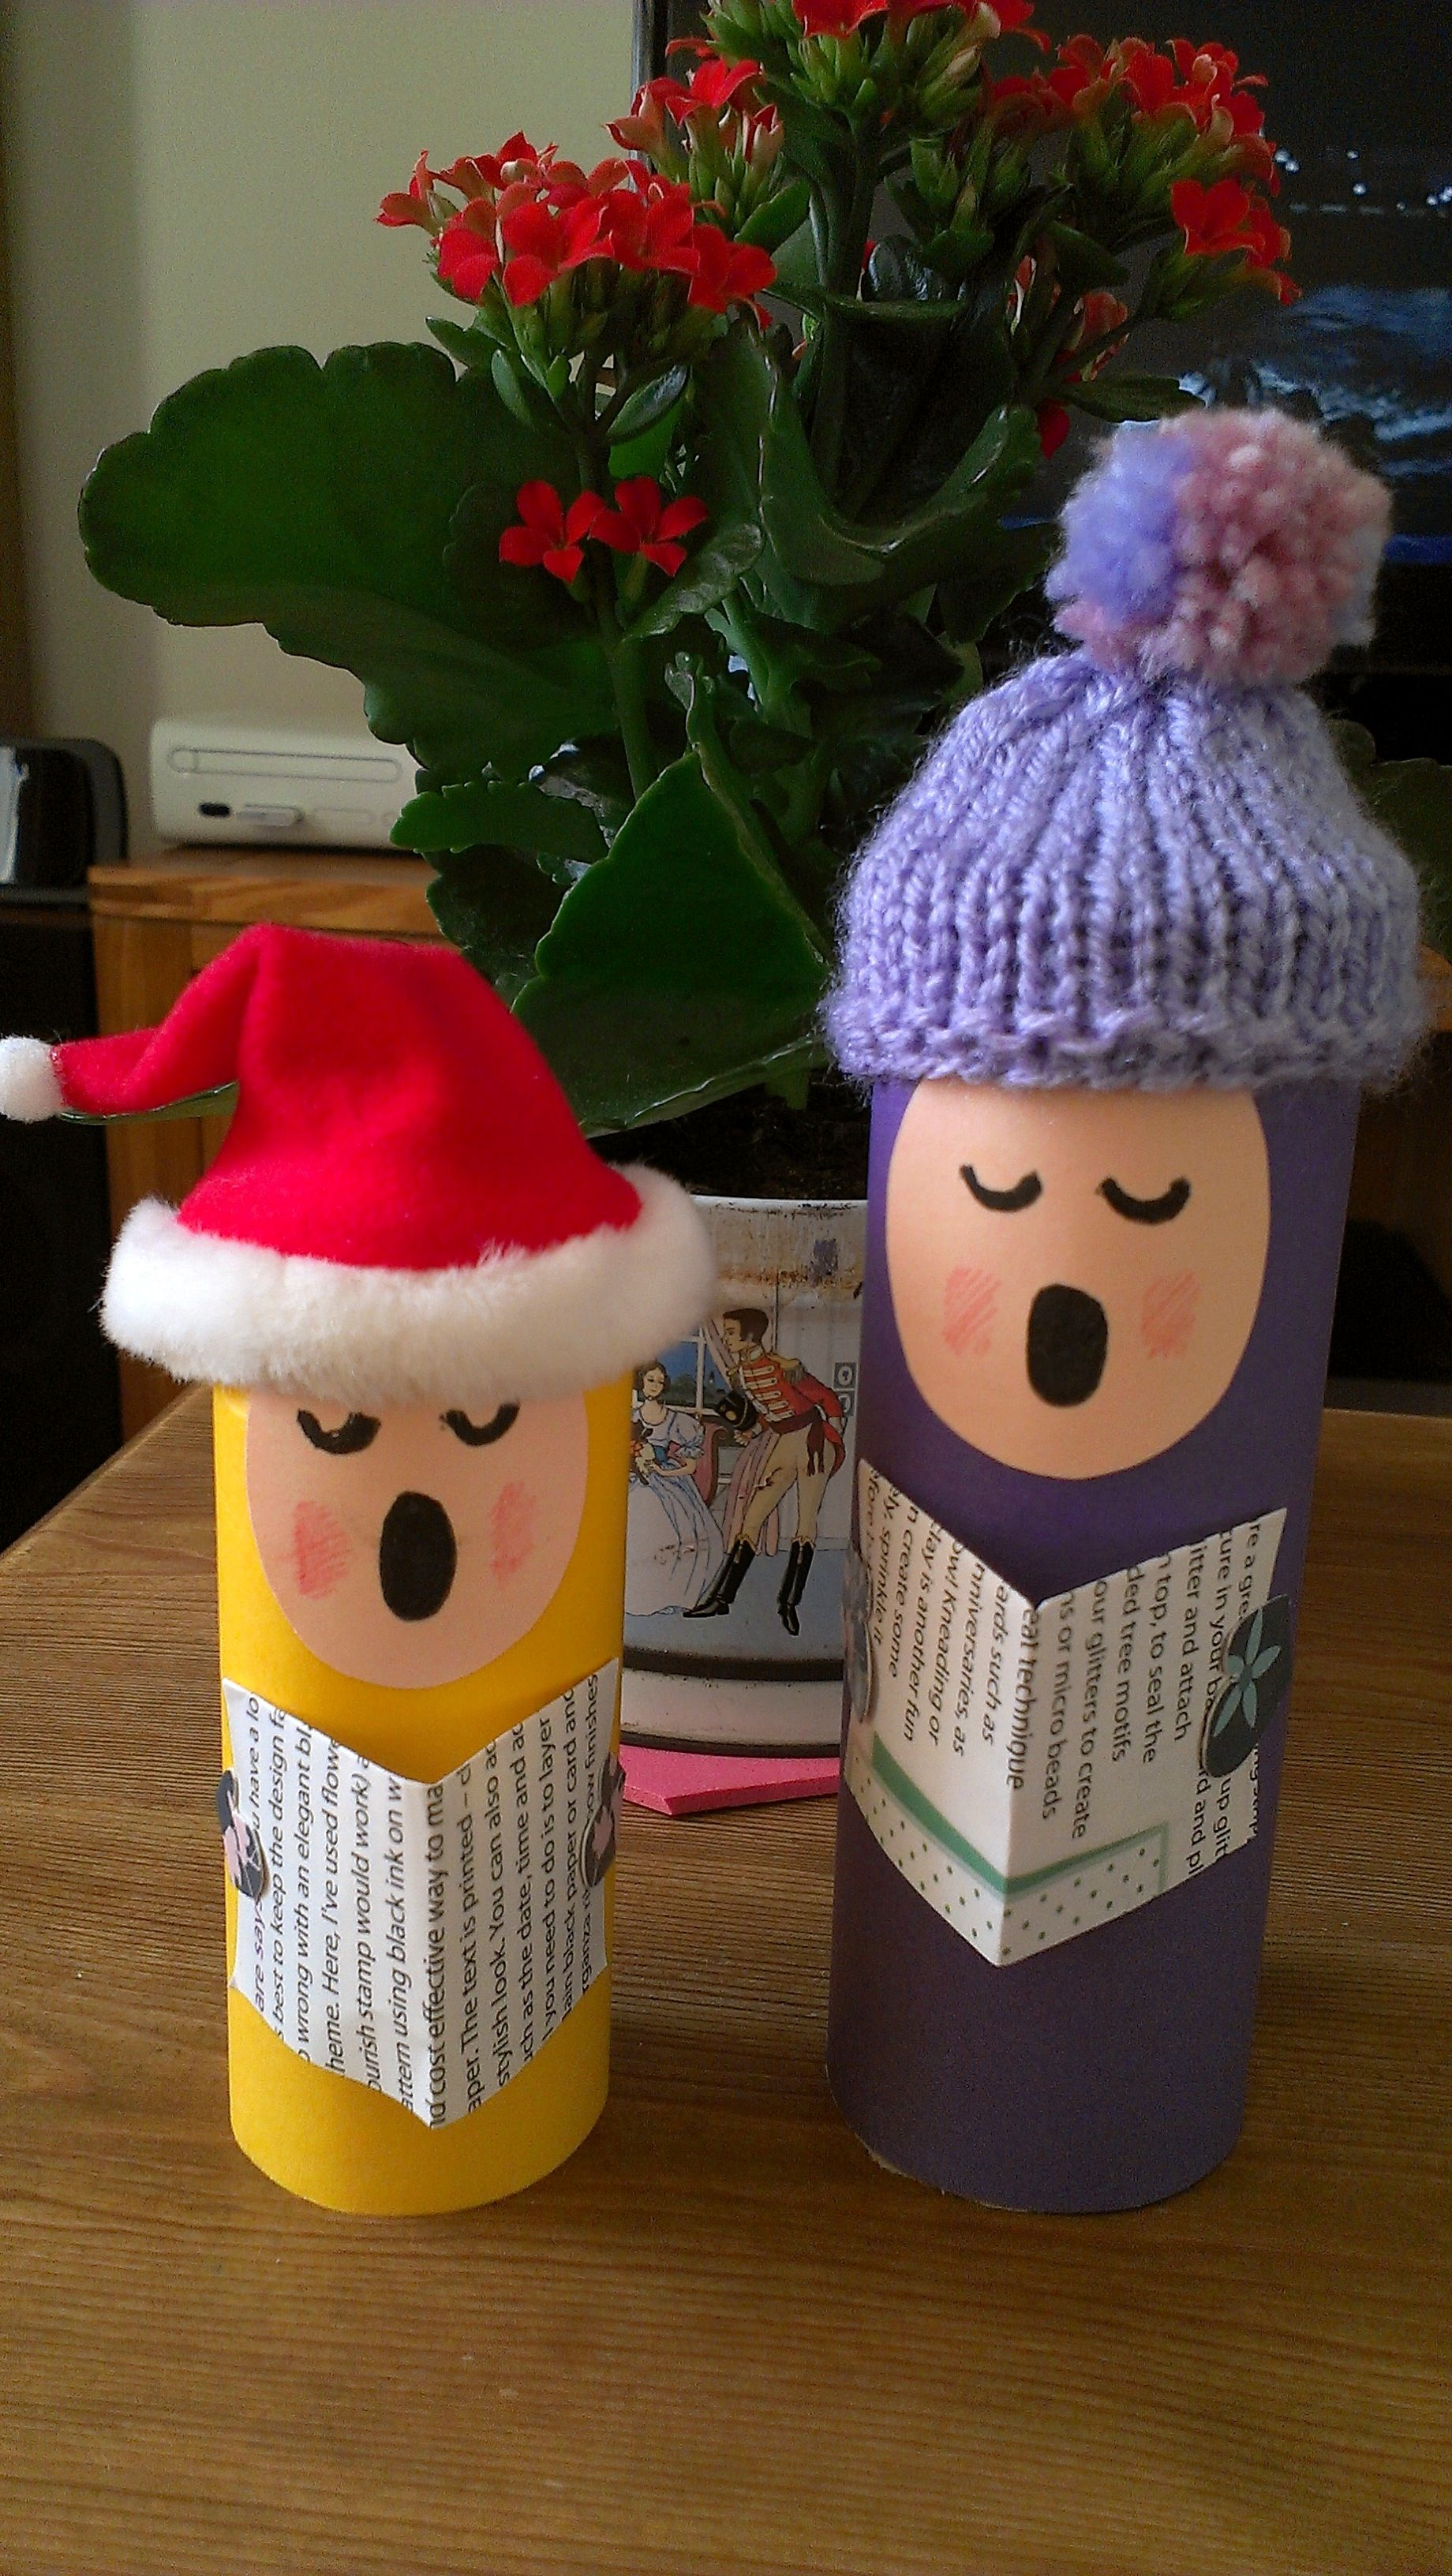 Toilet Roll Craft Ideas For Kids Part - 48: Toilet Paper Roll Carolers - Hats Are A UK Promotional Item